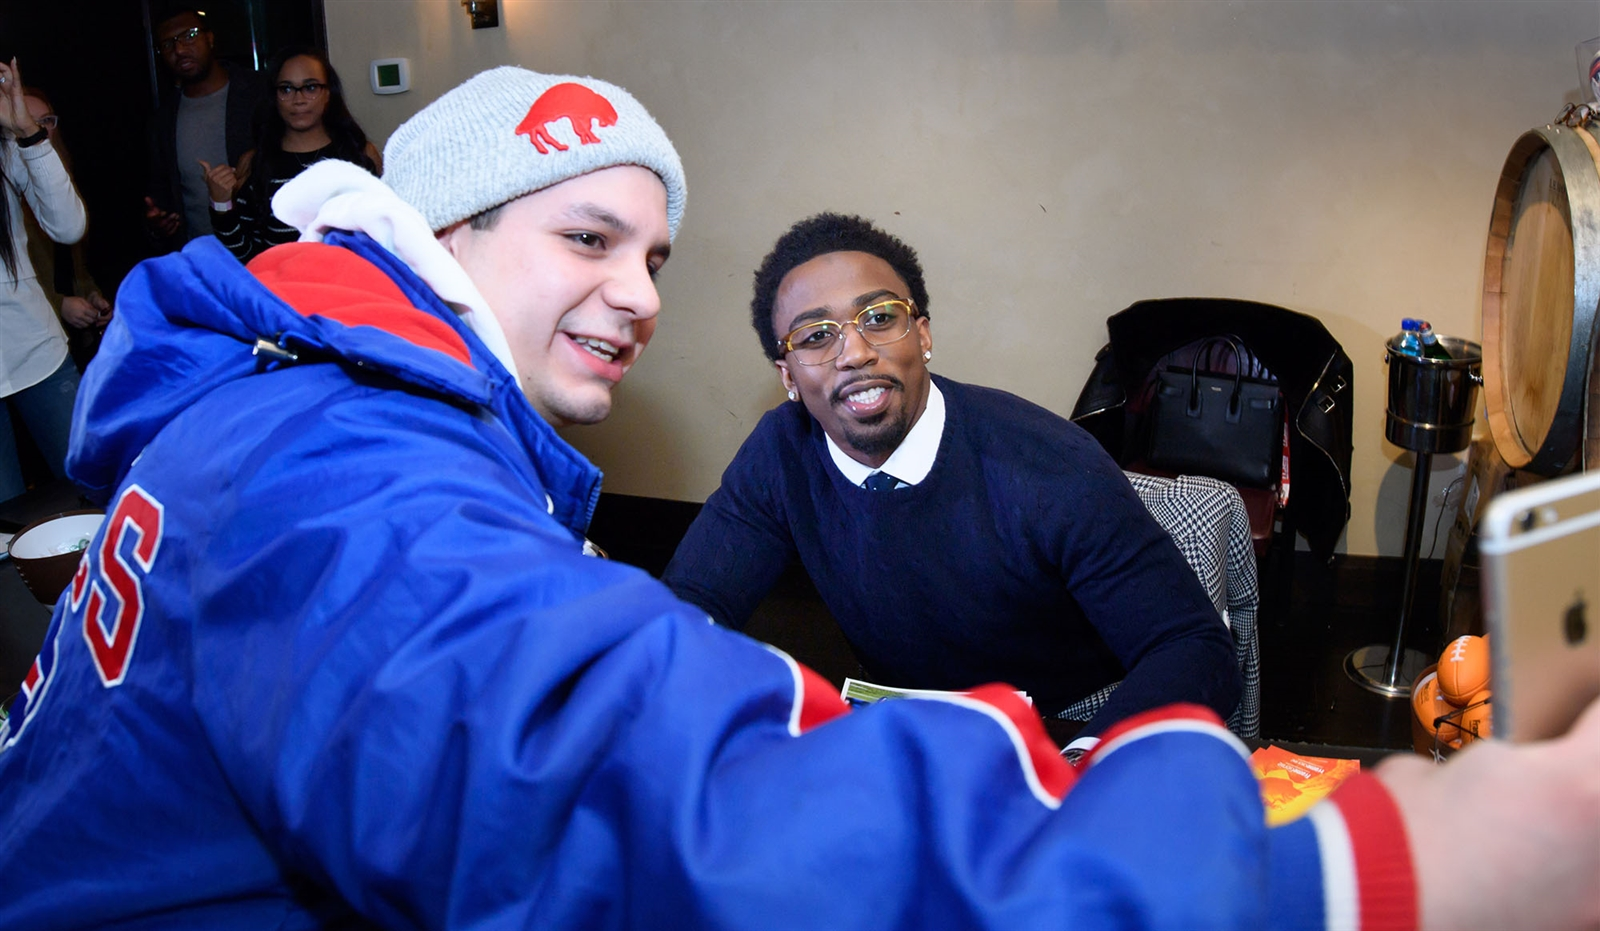 Bill's fan Tom Callahan, who lives in Minneapolis but grew up in Buffalo, took his photo with Buffalo Bills QB Tyrod Taylor who is partnering with FrameGenie for for his new T2 frame collection.